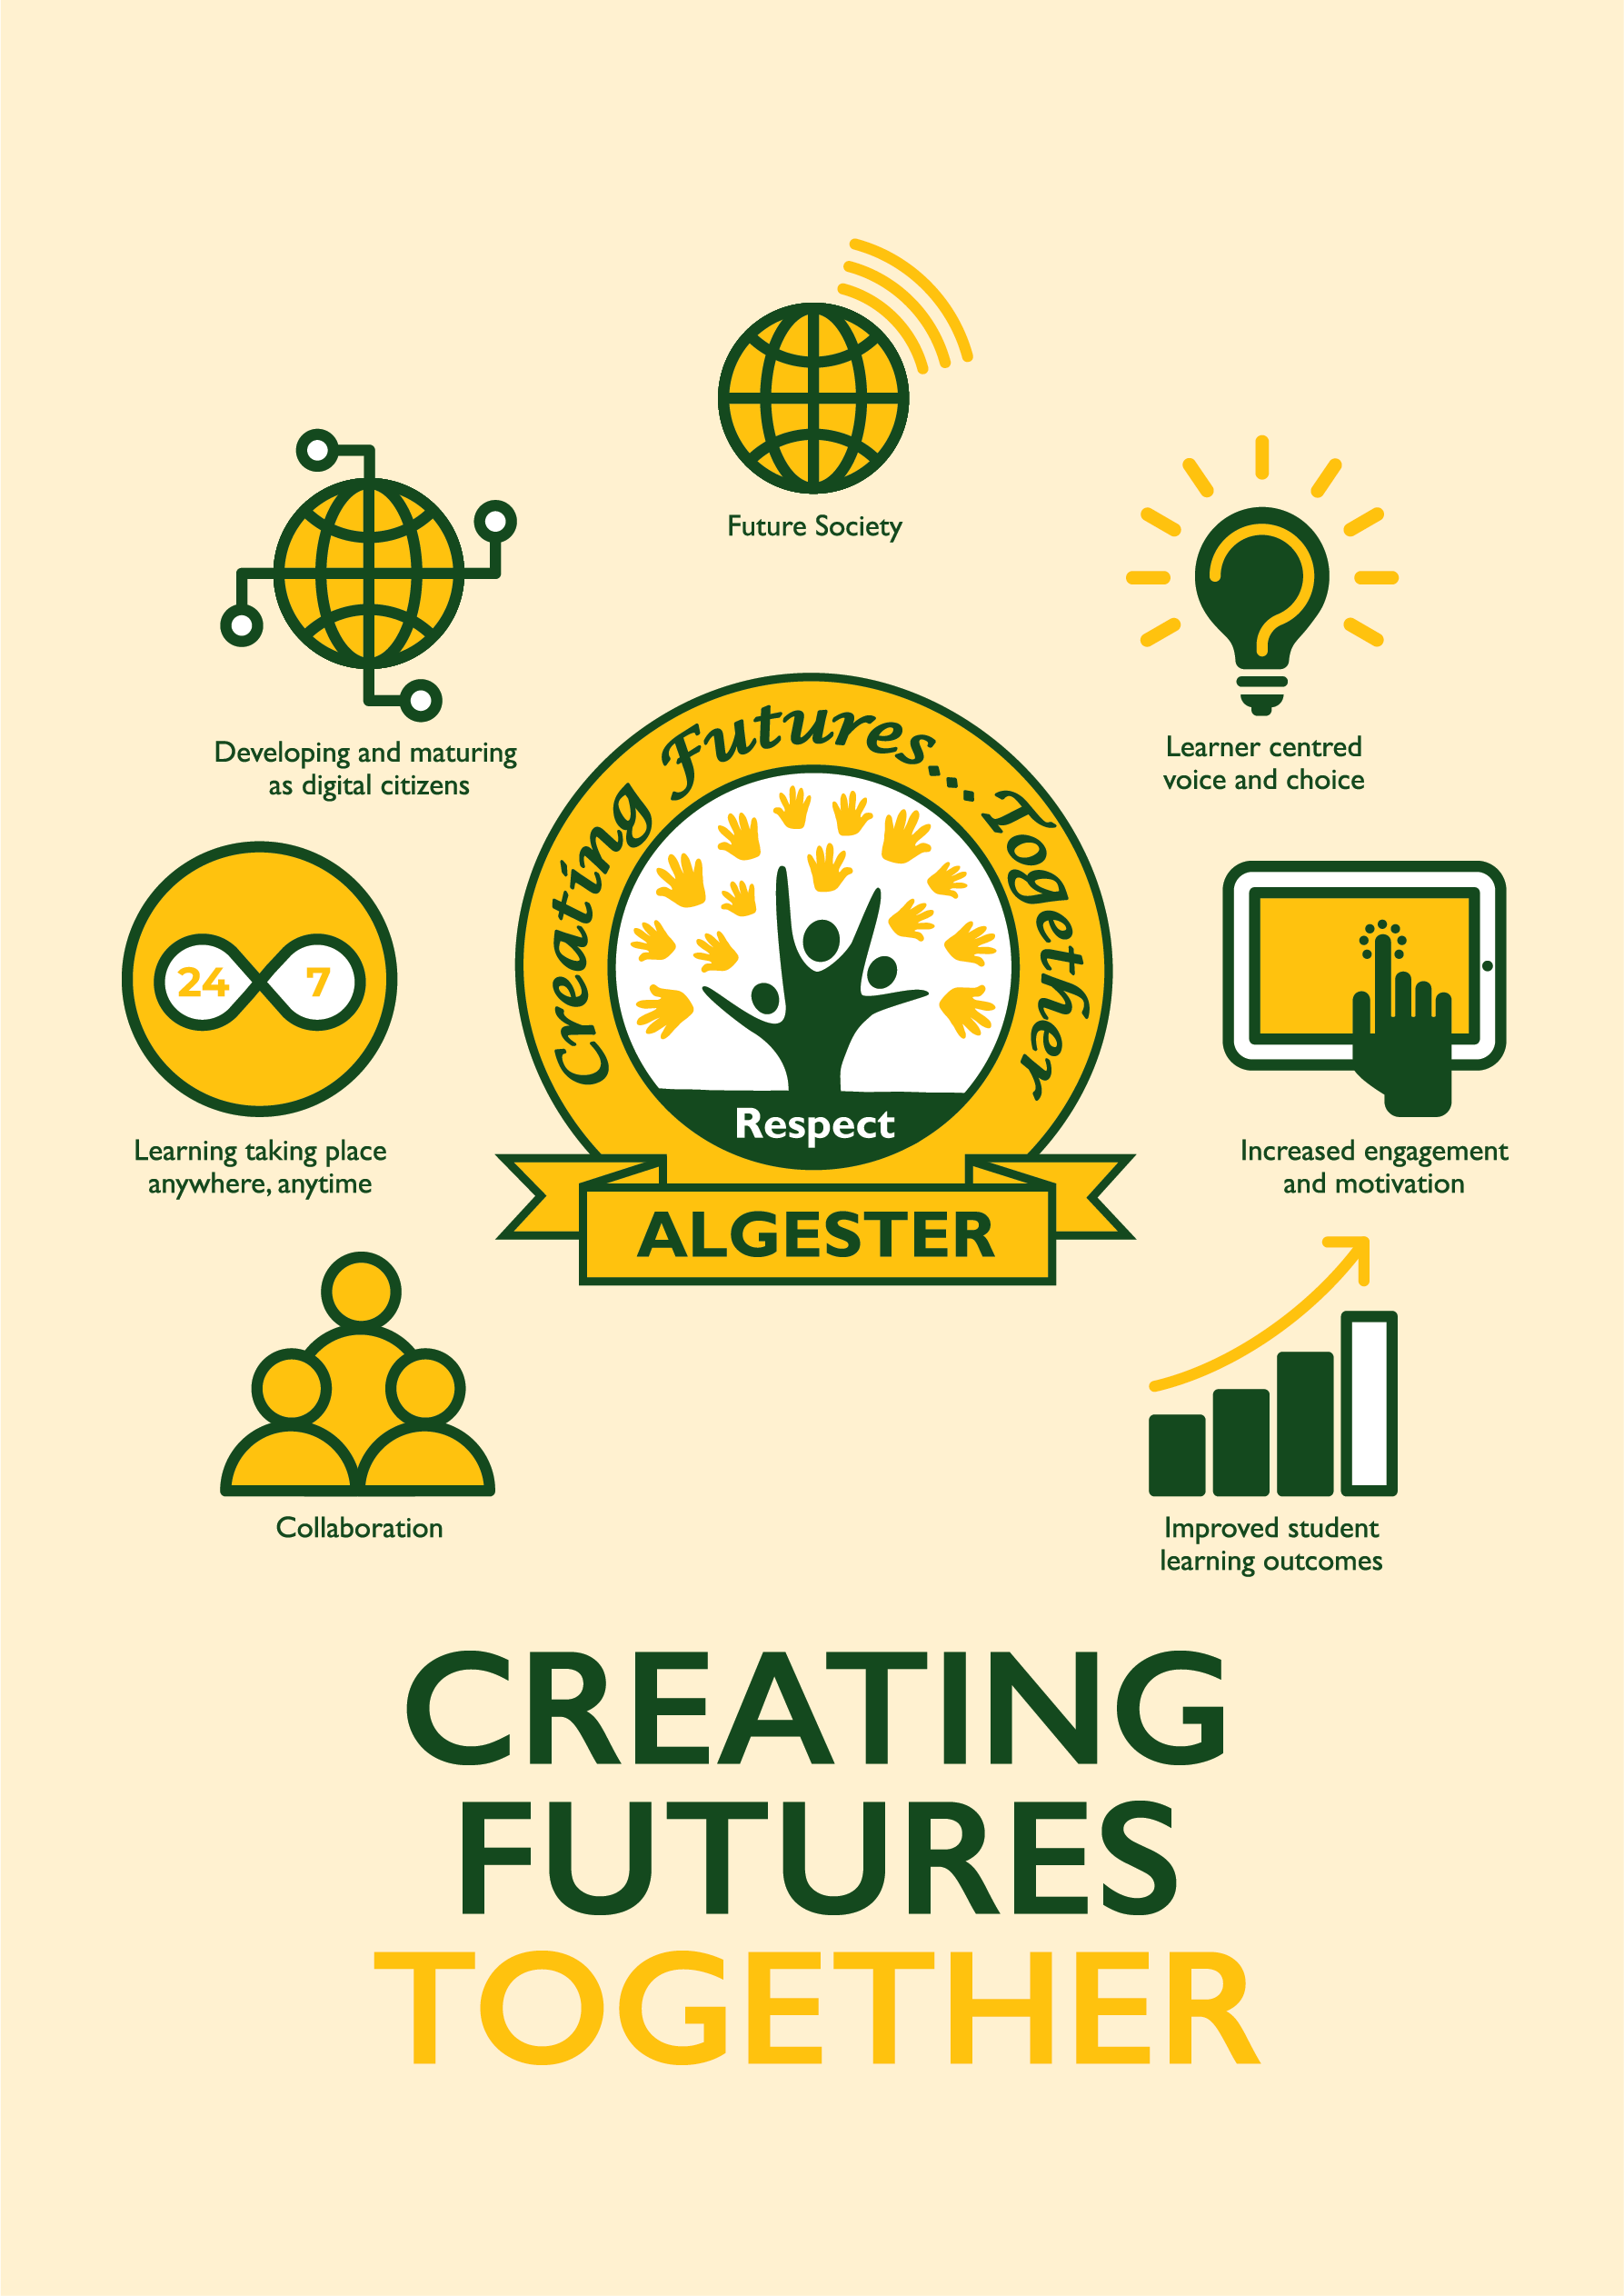 Creating futures together graphic